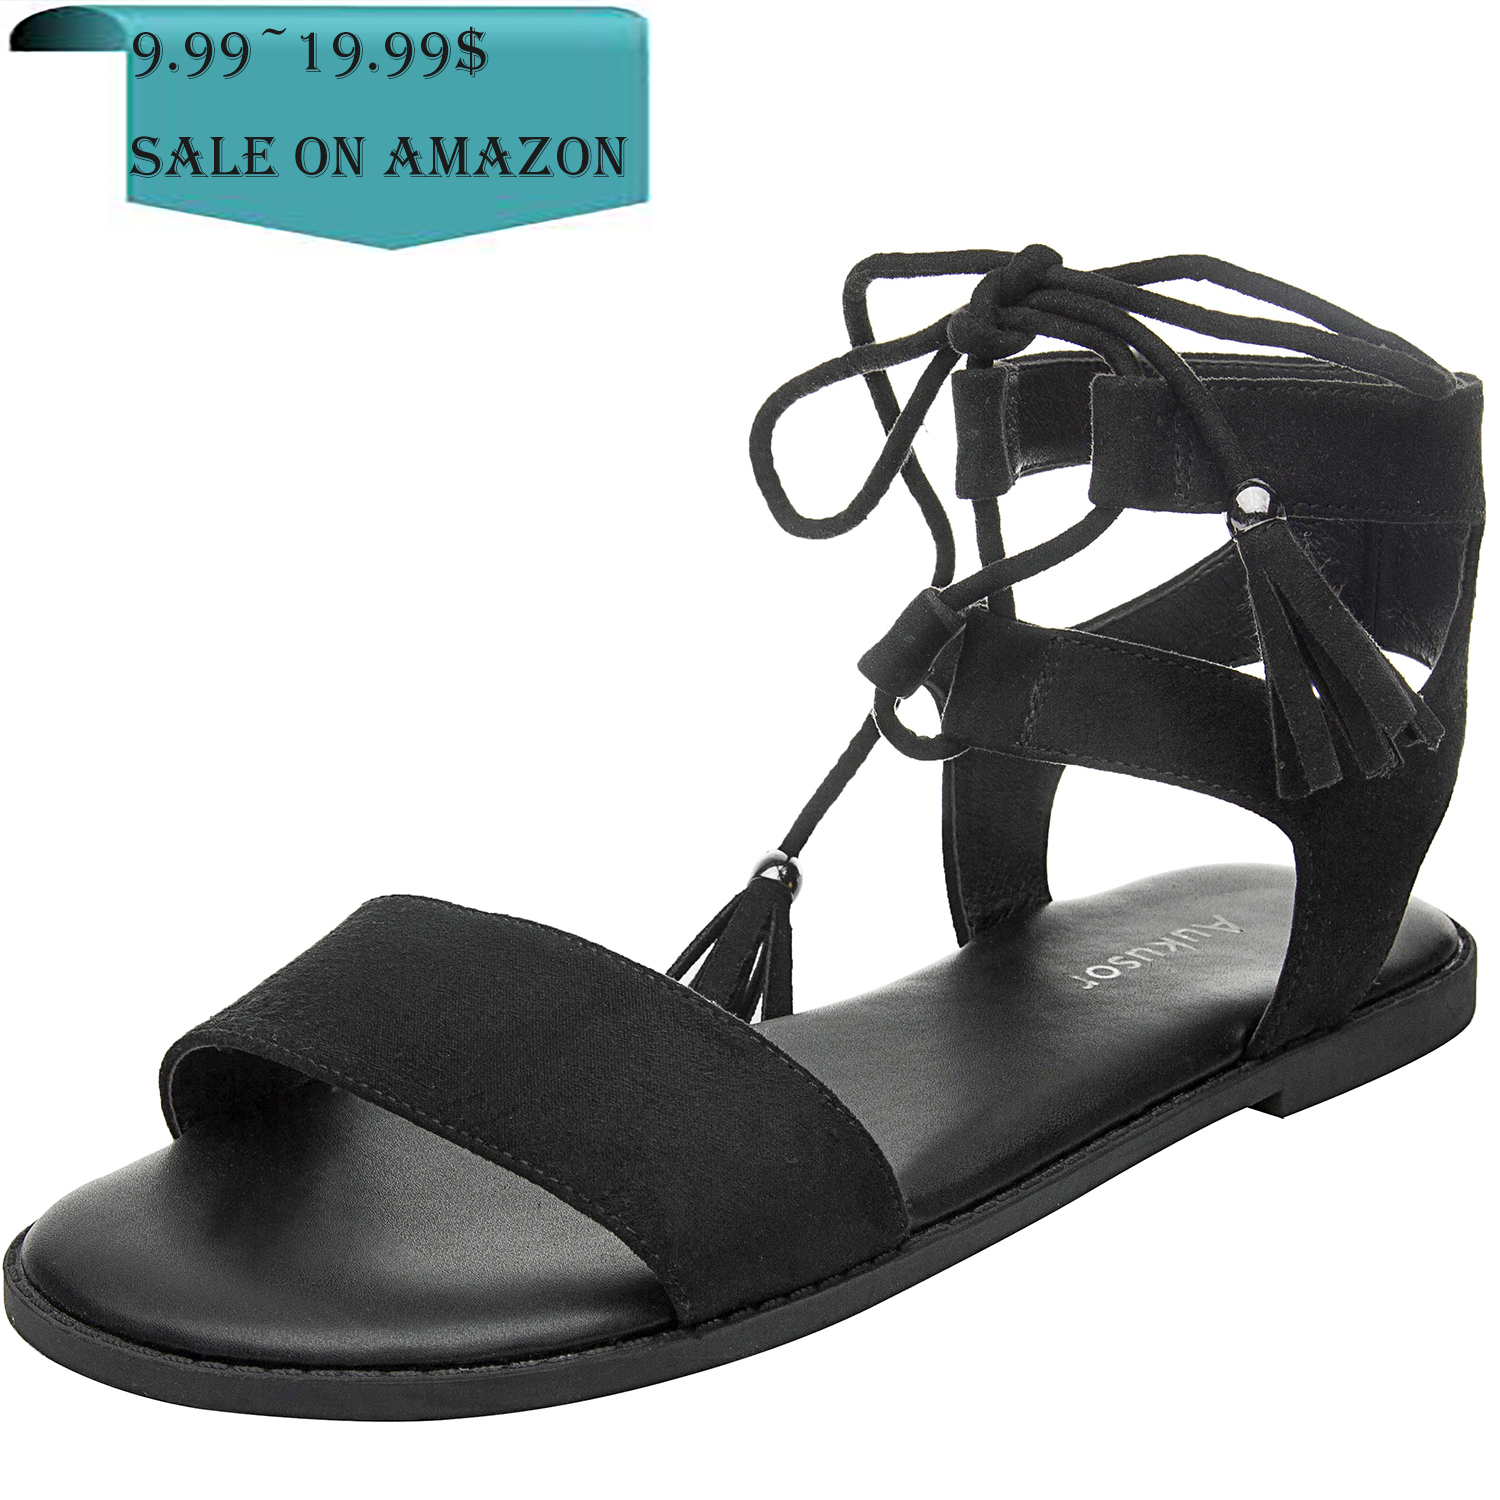 1a27cc9fc39 US  29.99 - Women s Wide Width Flat Sandals - Comfortable Lace up Fringed  Tassel Ankle Strap Suede Dress Shoes. - www.luoika-us.com